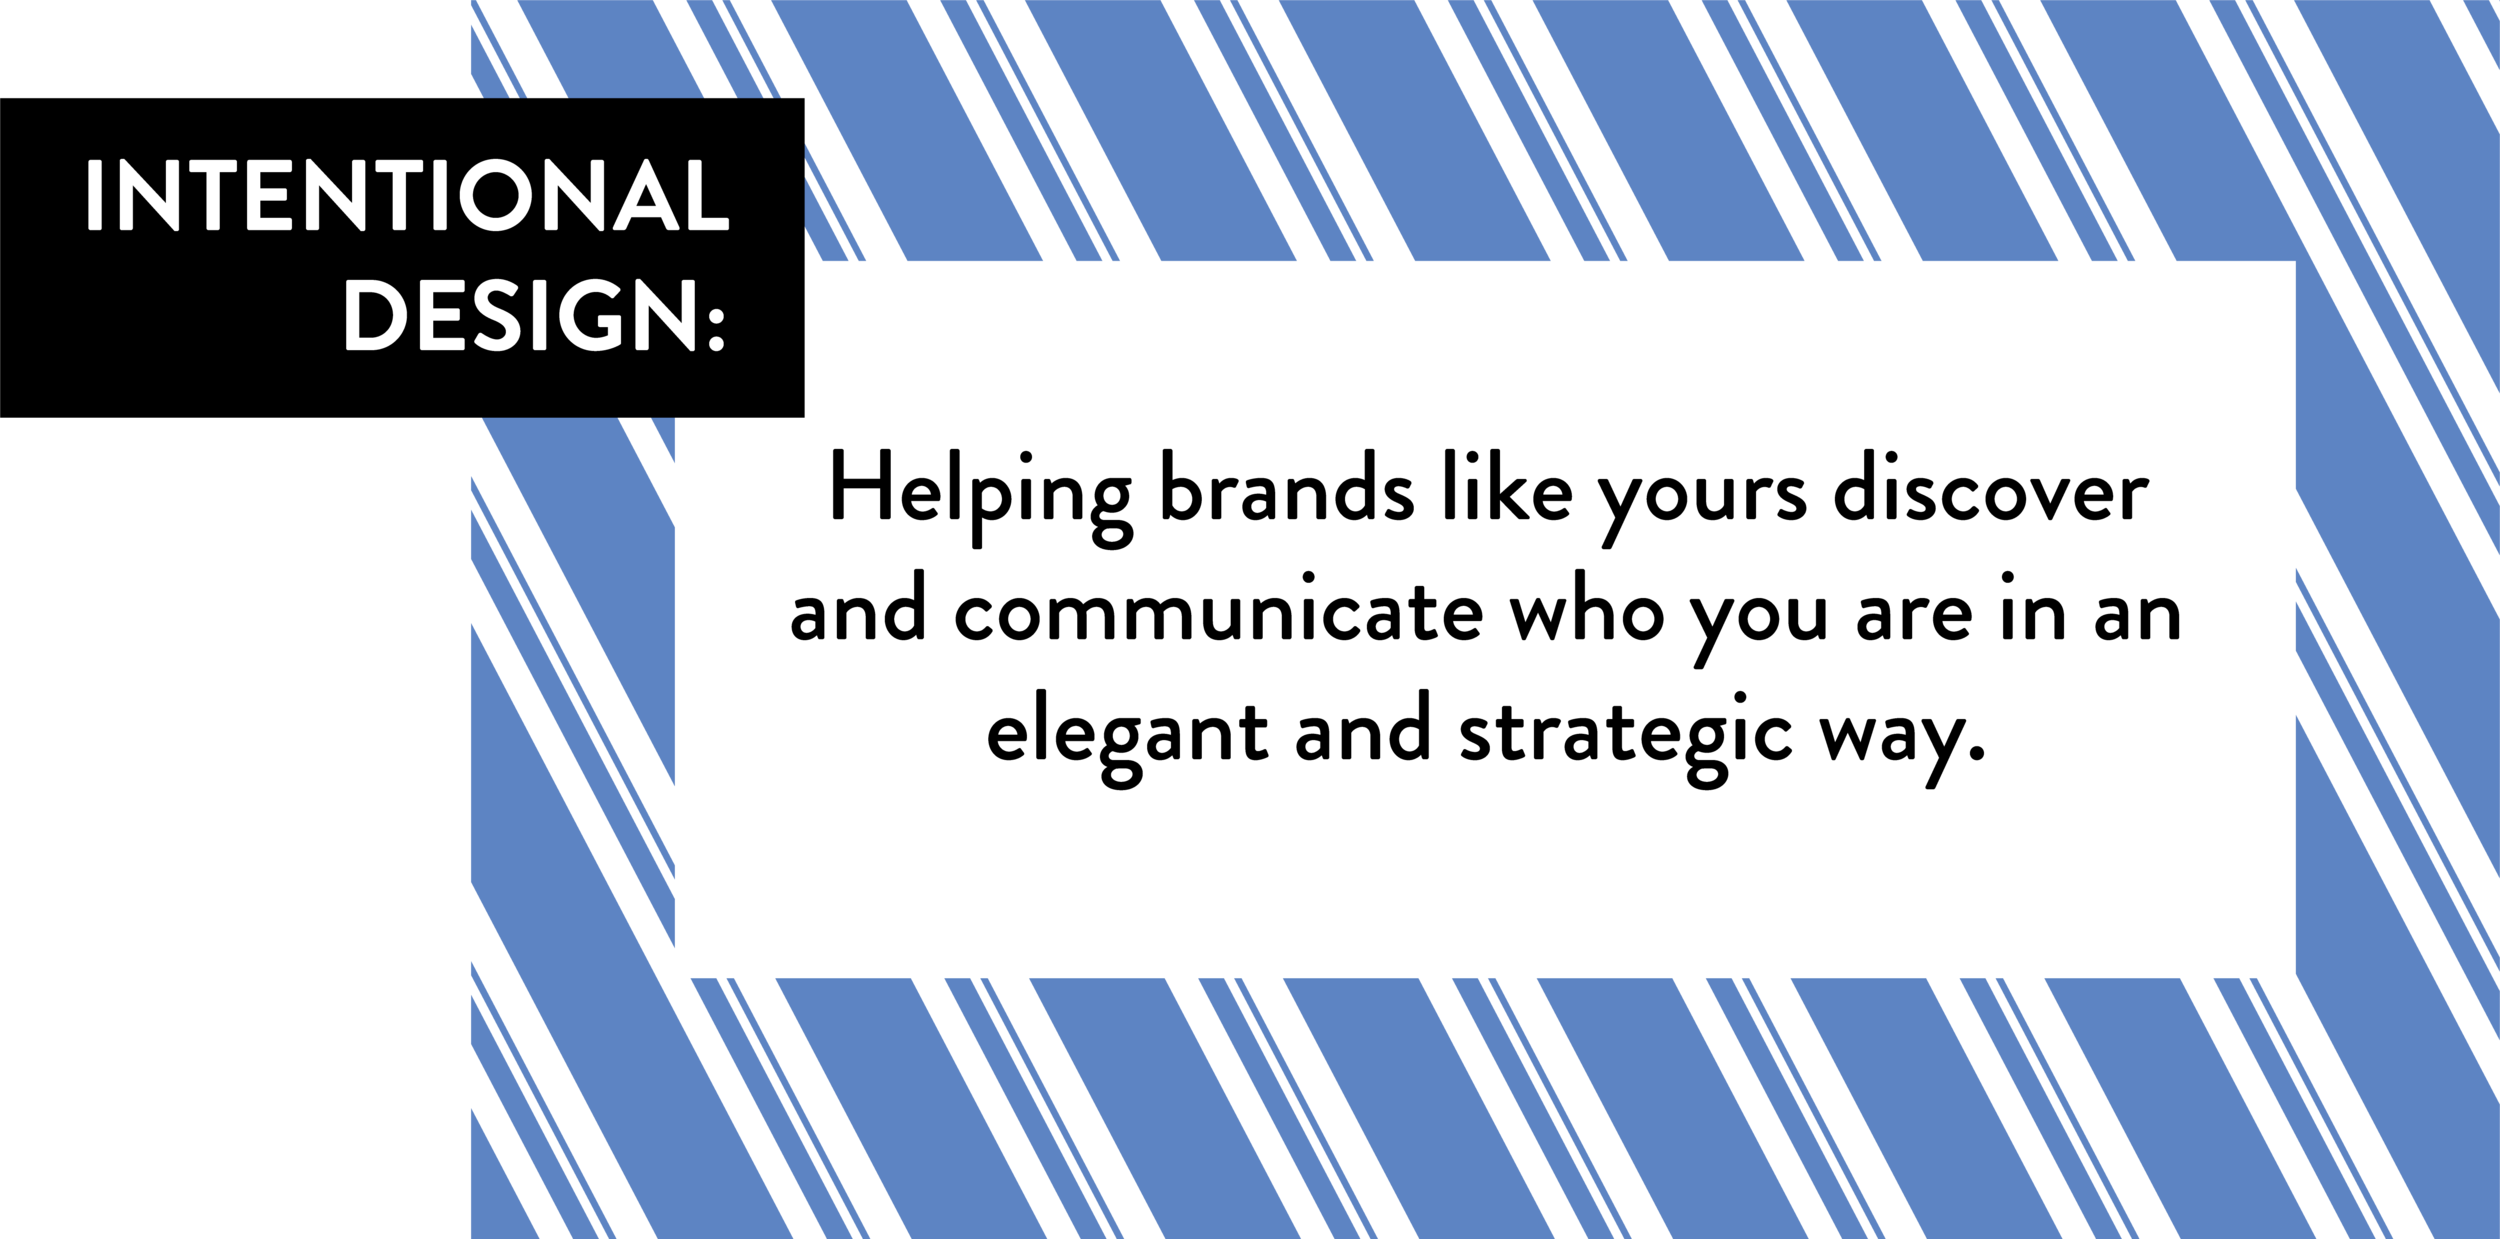 graphic design and brand strategy for brands and businesses based in New England and beyond